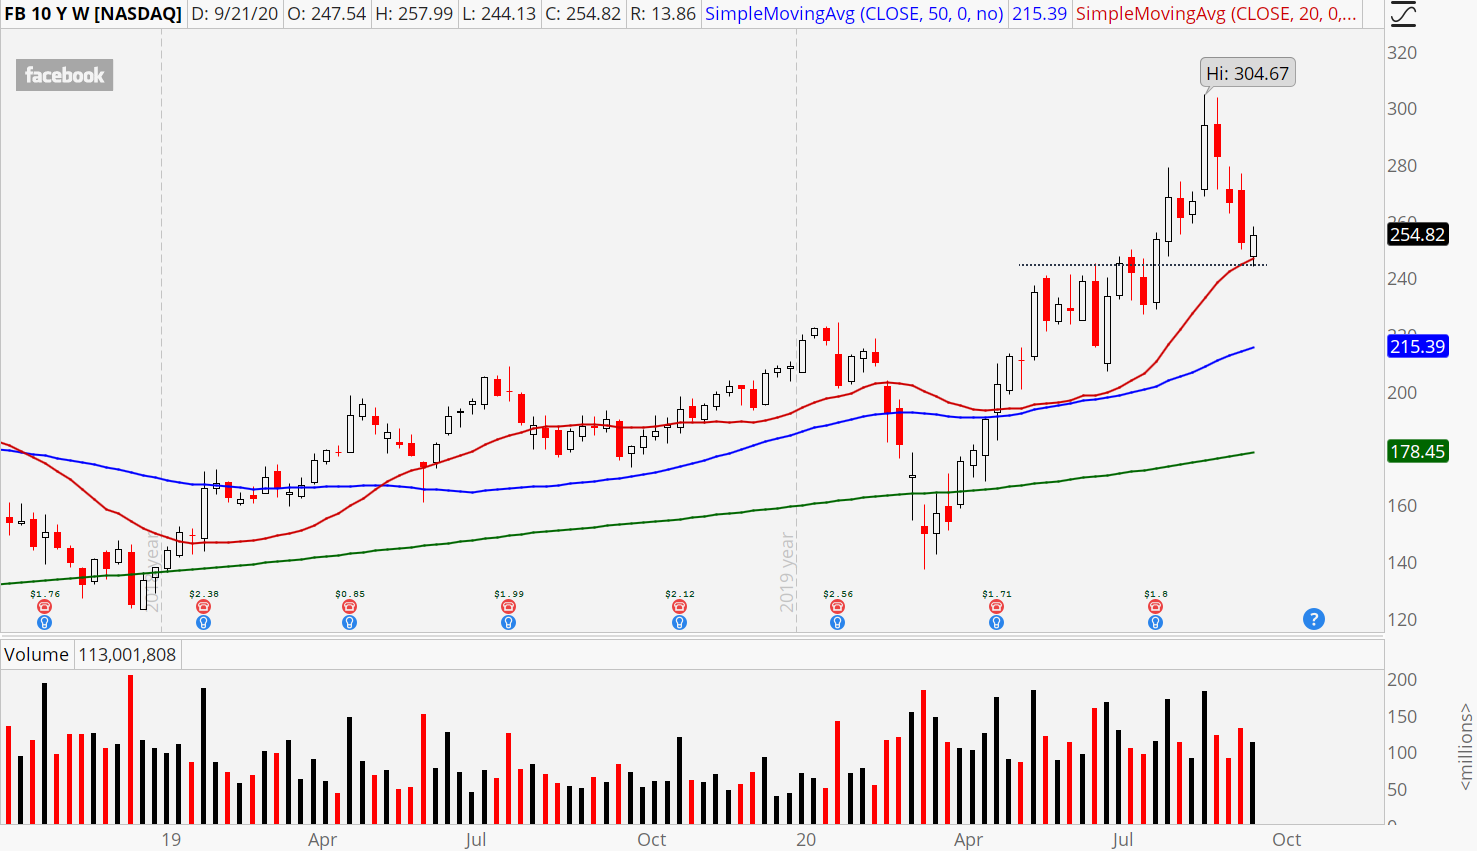 Facebook (FB) weekly chart showing 20-day moving average test